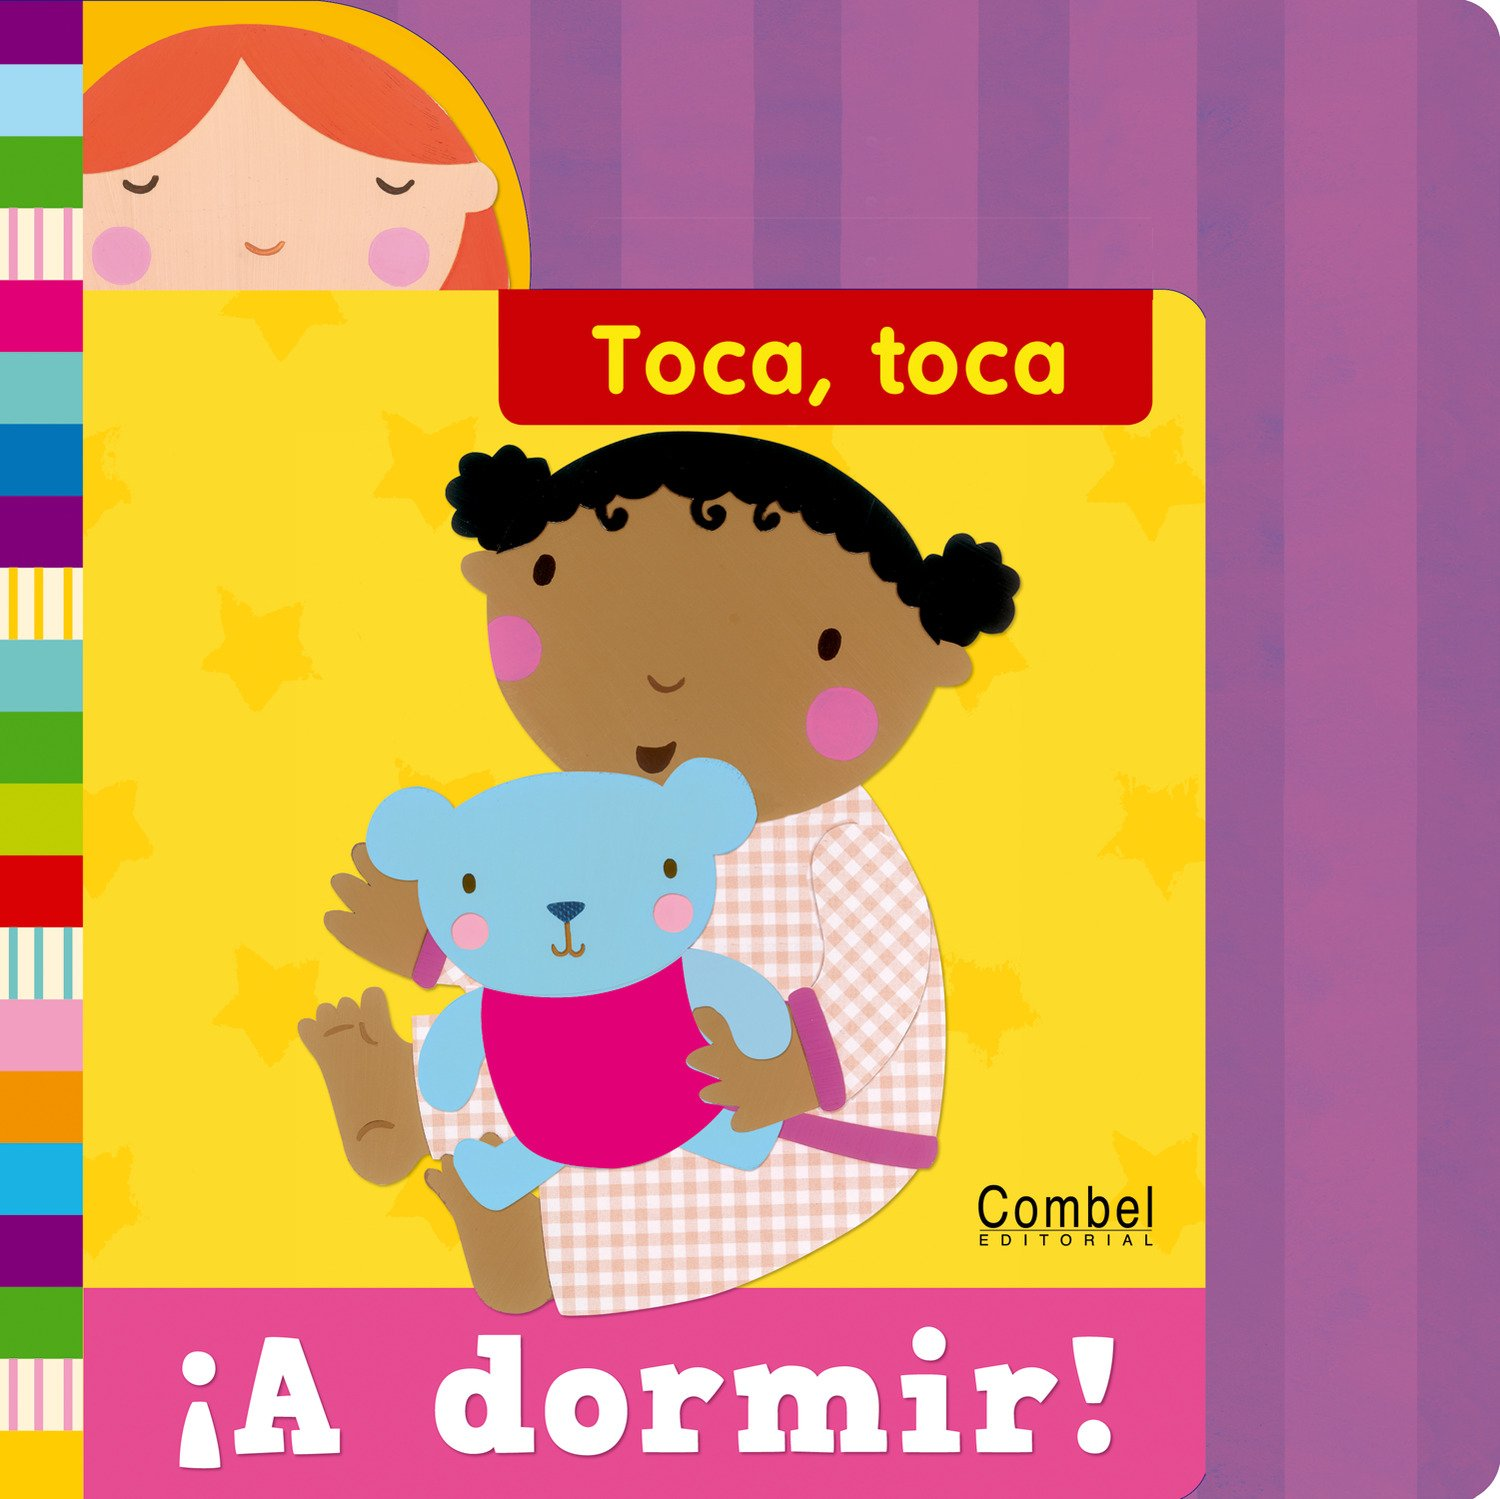 ¡A dormir! (Toca toca series) (Spanish Edition) (Spanish) Board book – November 1, 2013